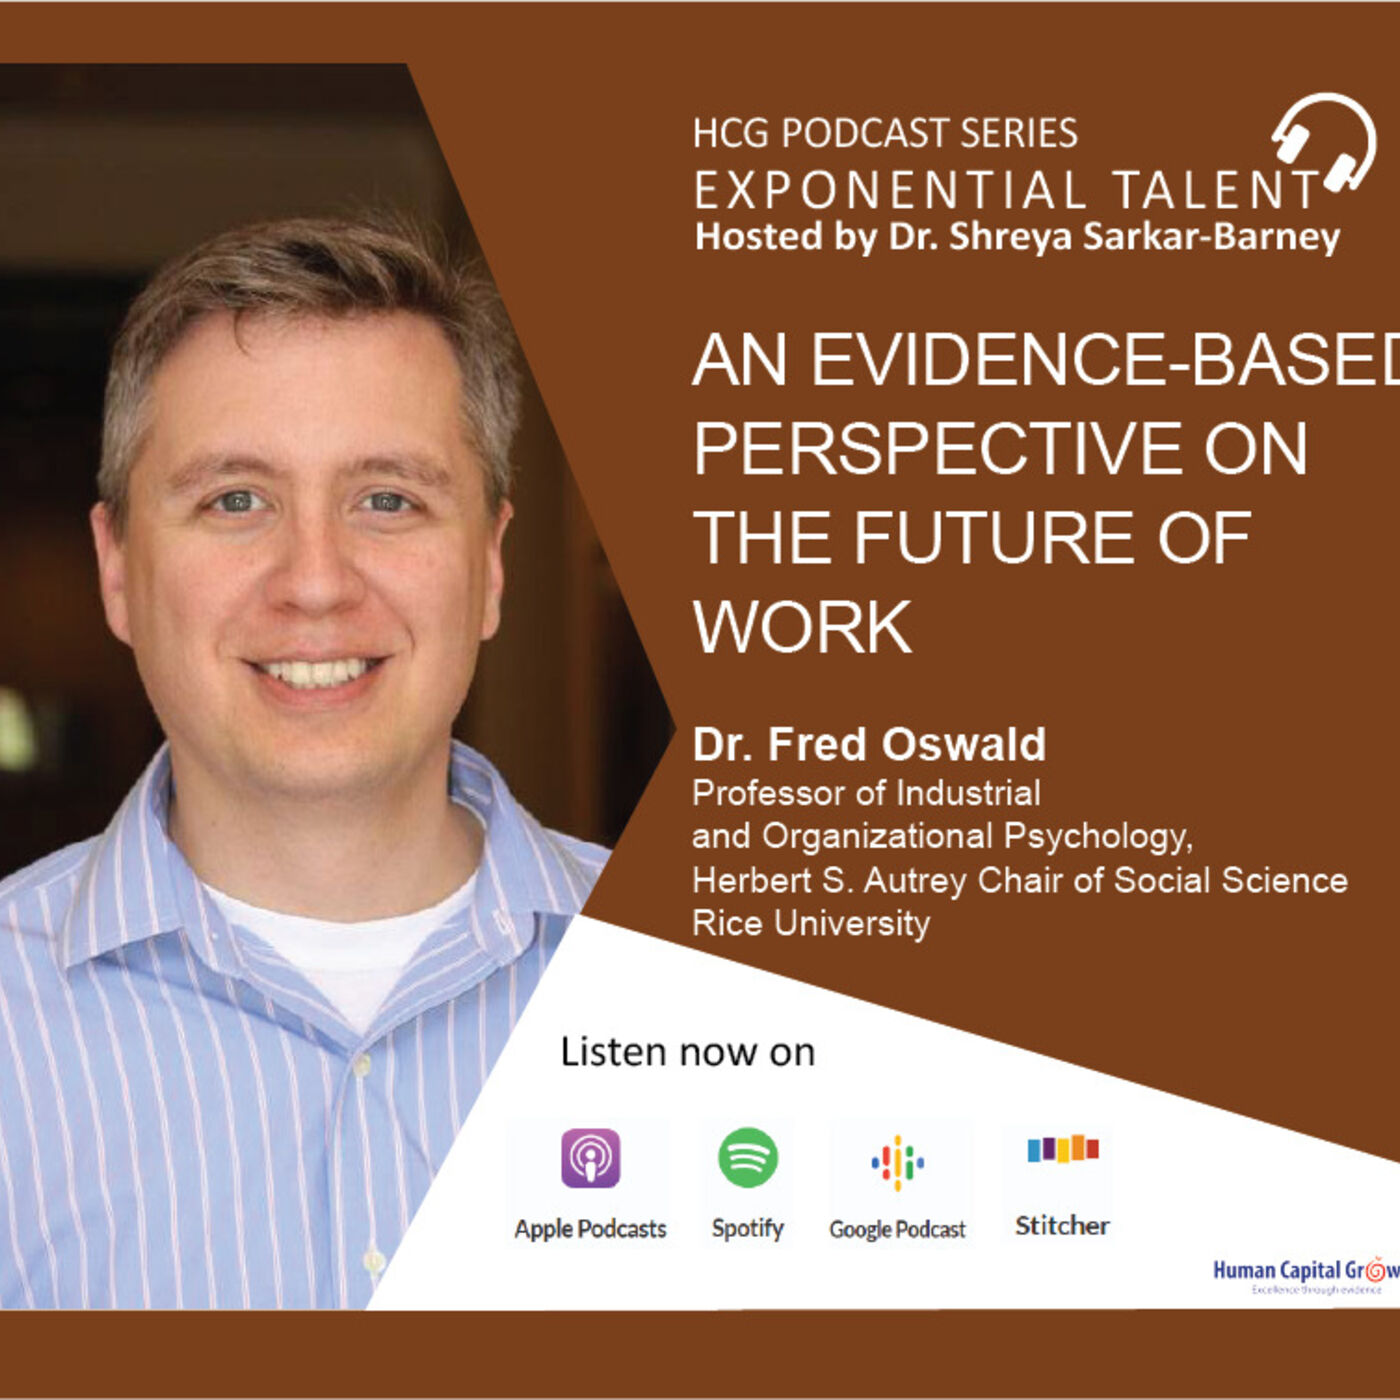 An Evidence-based Perspective on the Future of Work